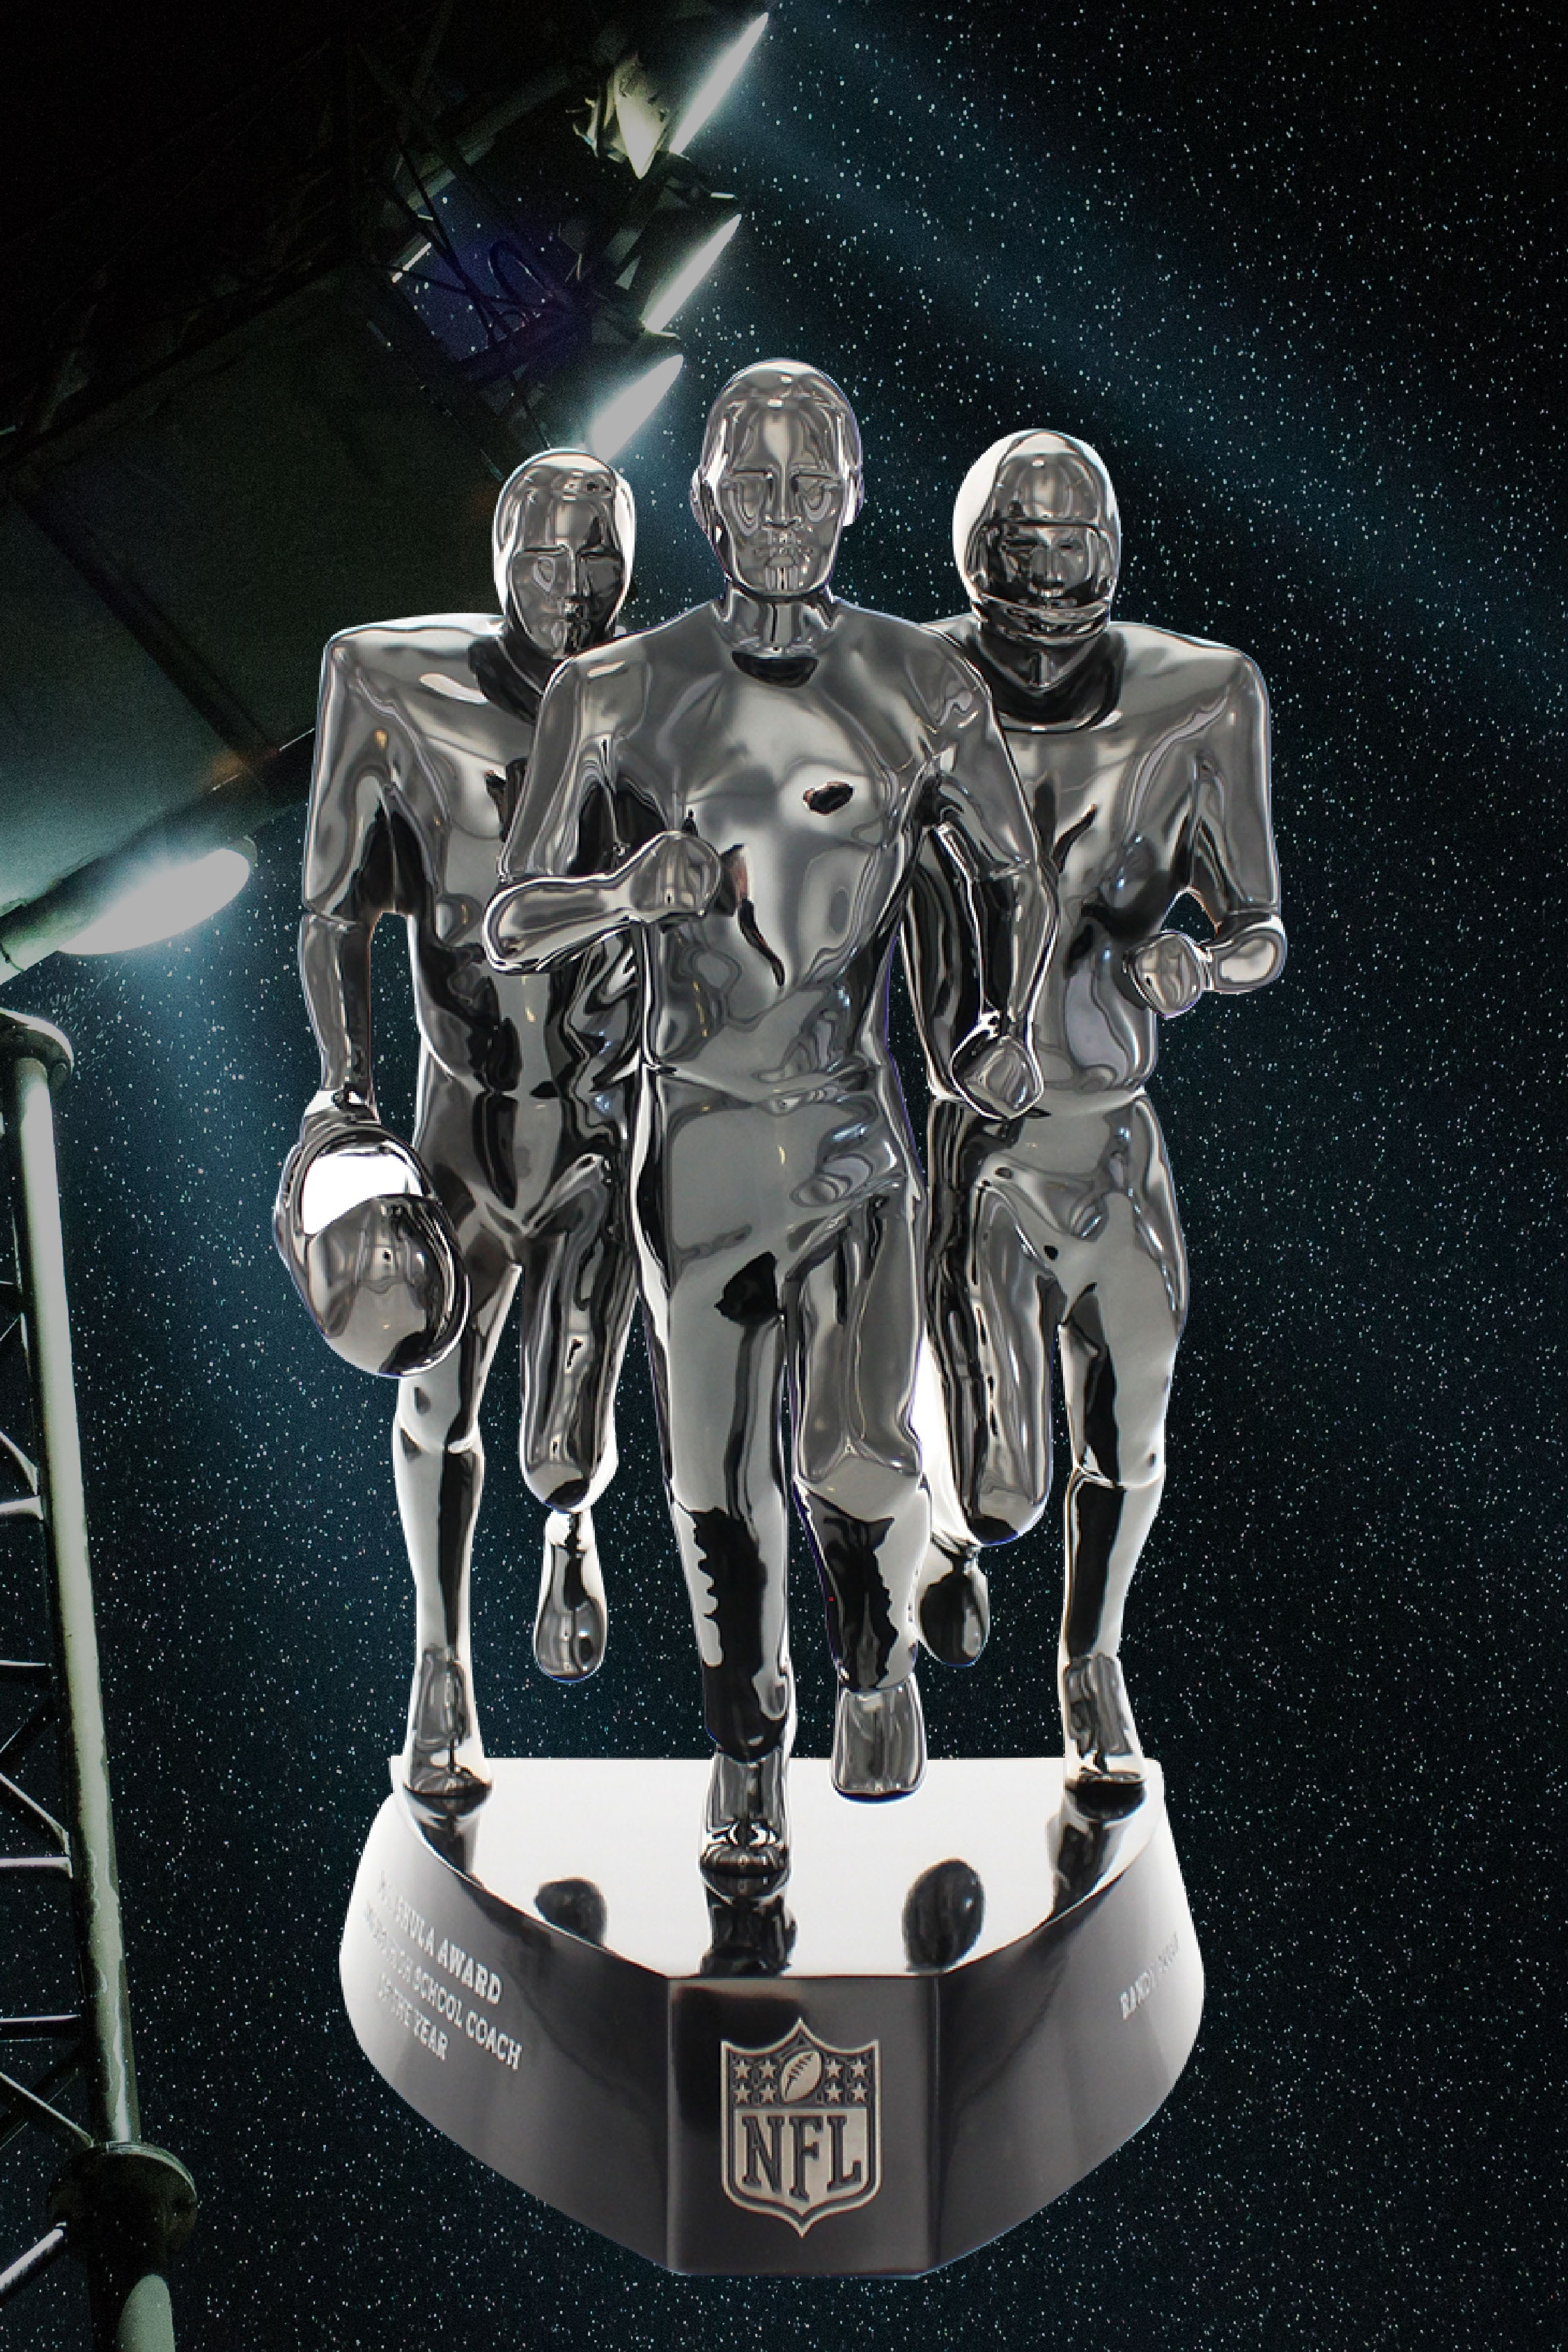 Front view, NFL Don Shula trophy superimposed over football stadium lights. Award has 3 metal figures in running pose